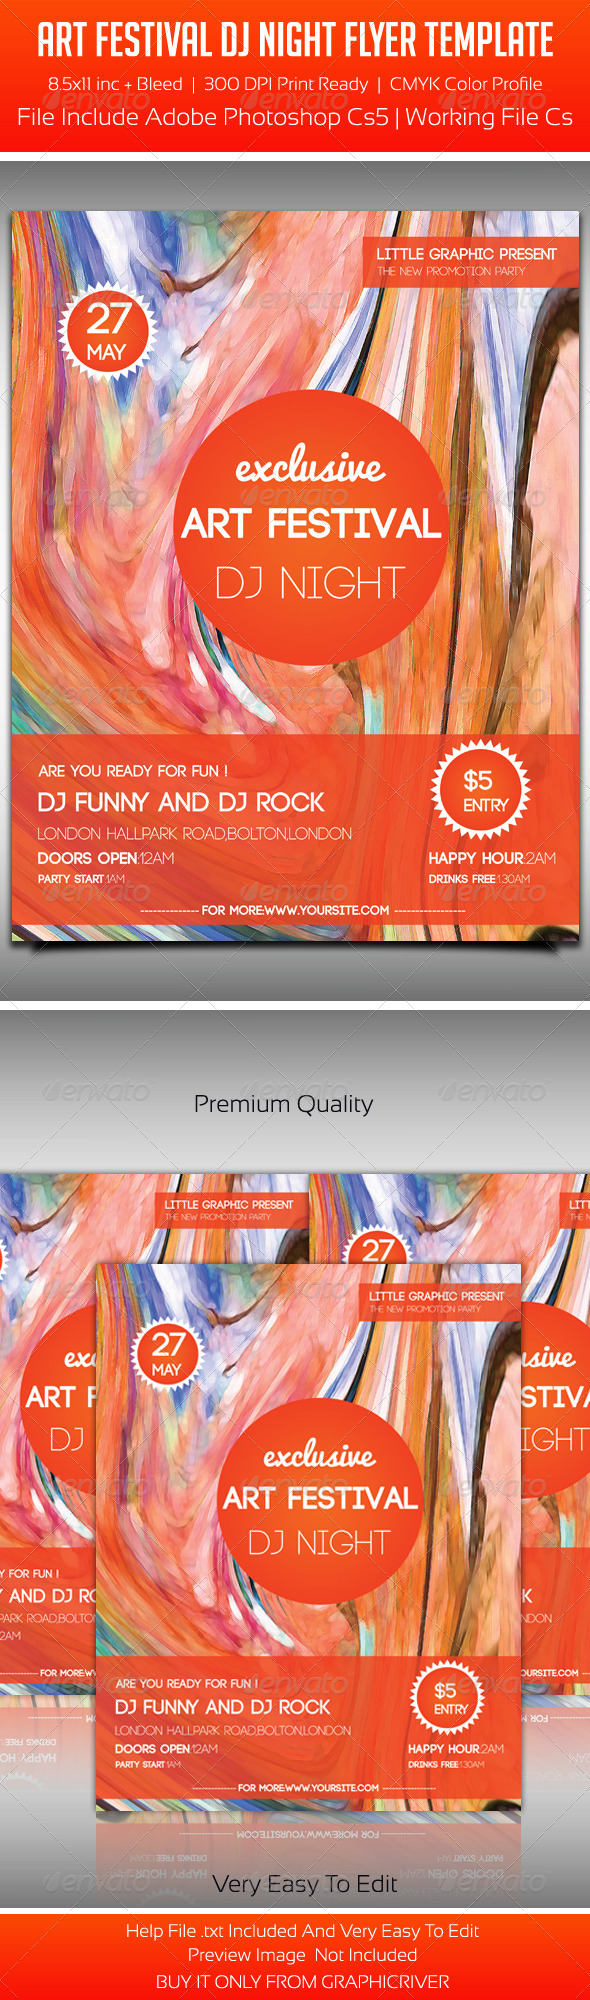 Art Festival Party Flyer Template - Events Flyers